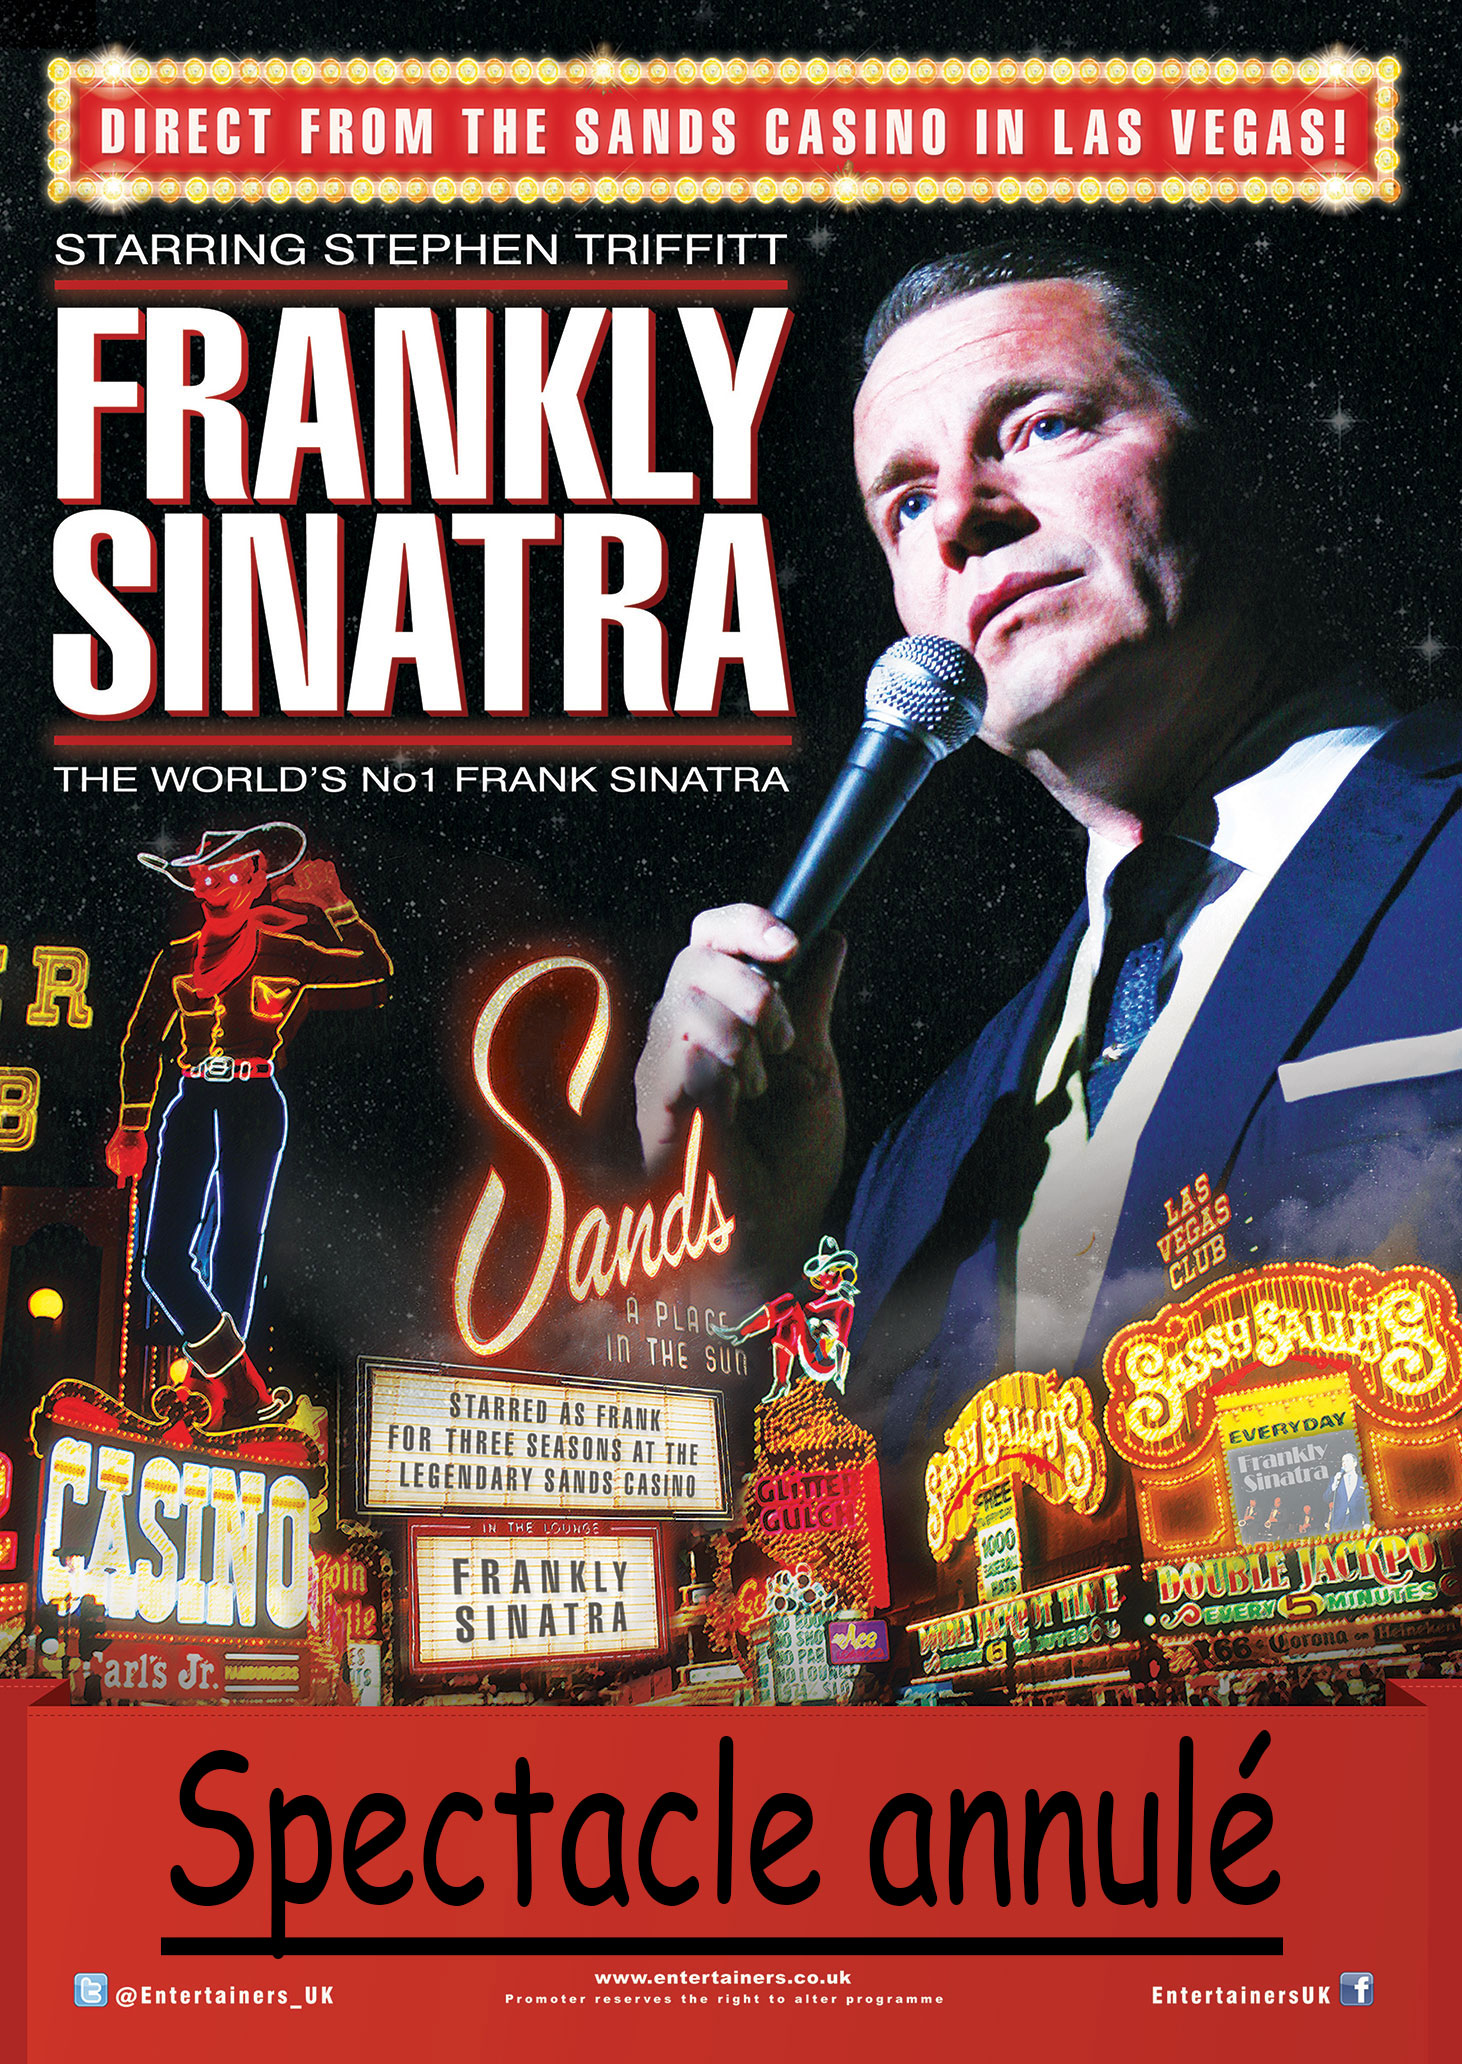 frankly-sinatra-affiche_270418GAnnulé